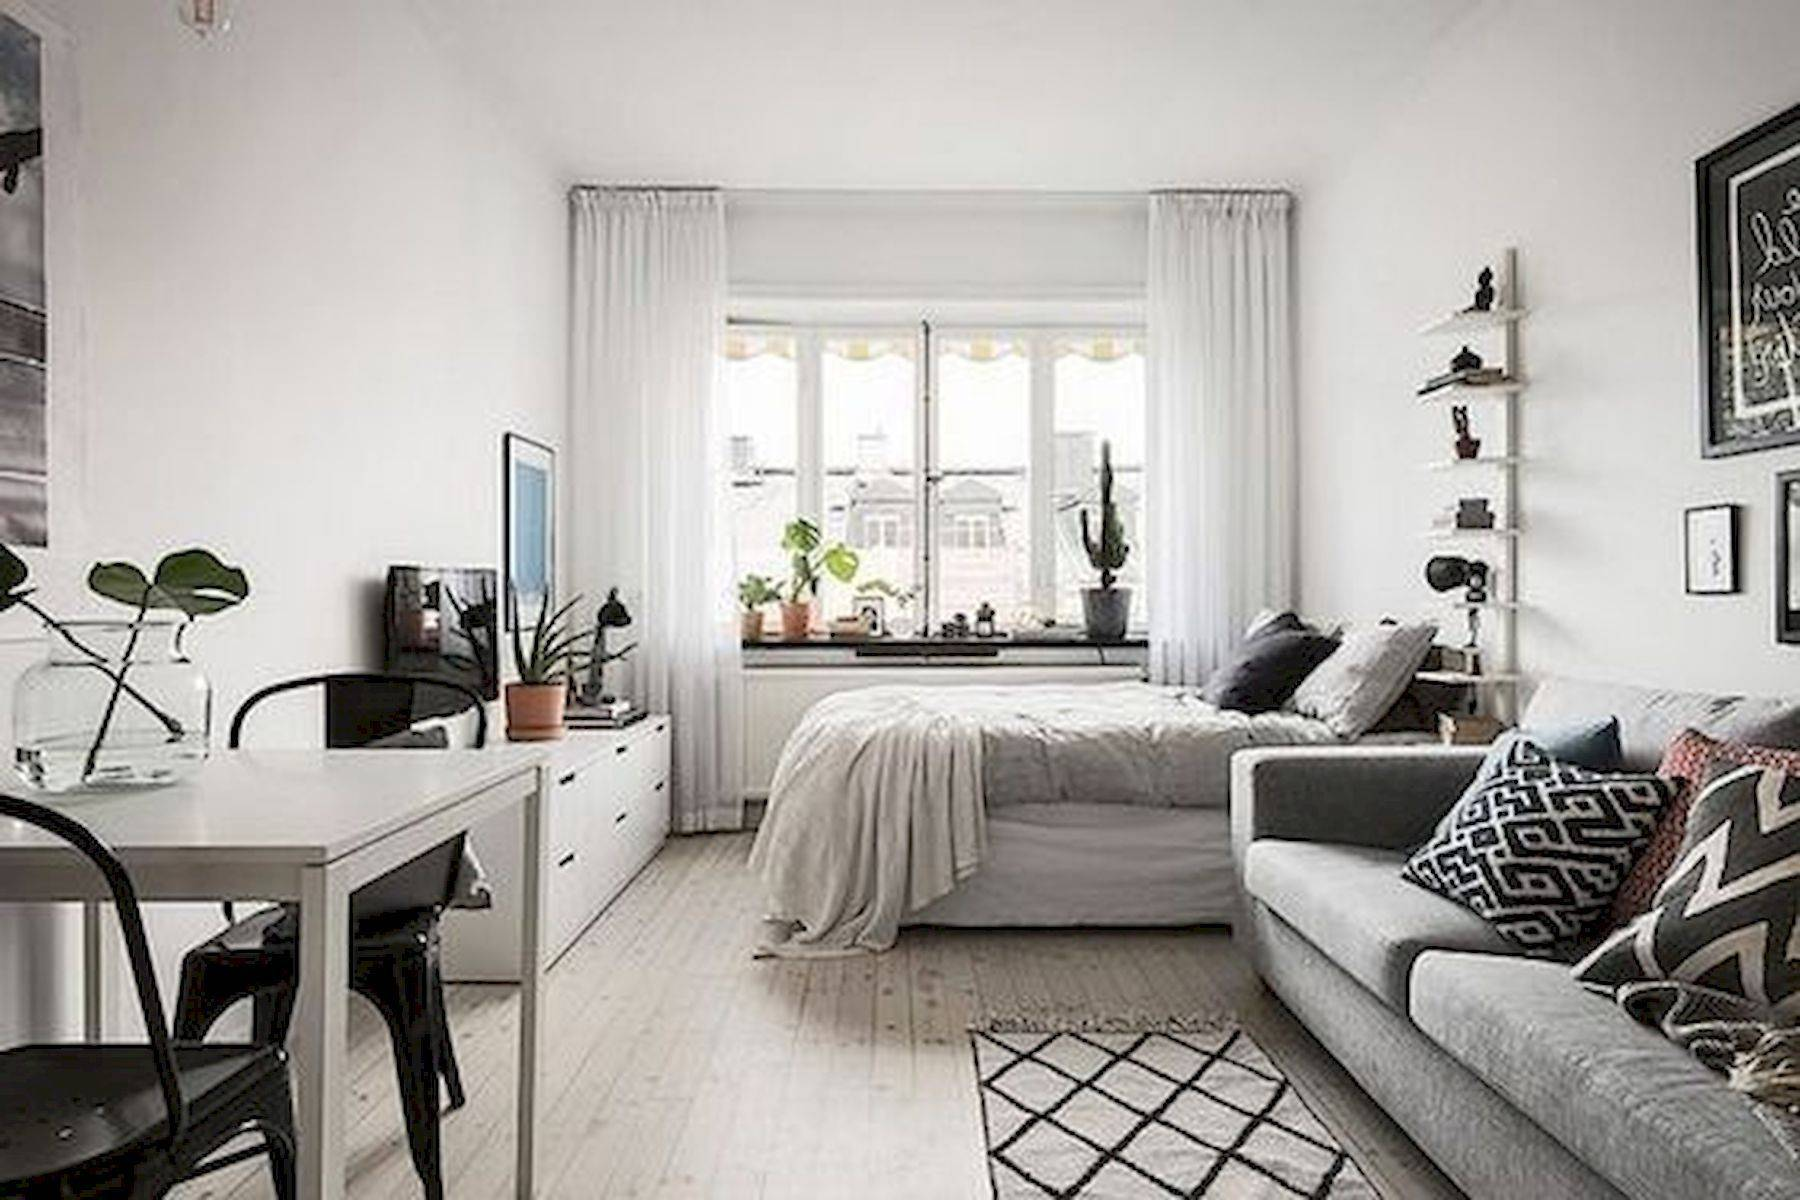 Studio Apartment Interior Design Lovely Got A Super Small Studio Apartment Just because Your Square